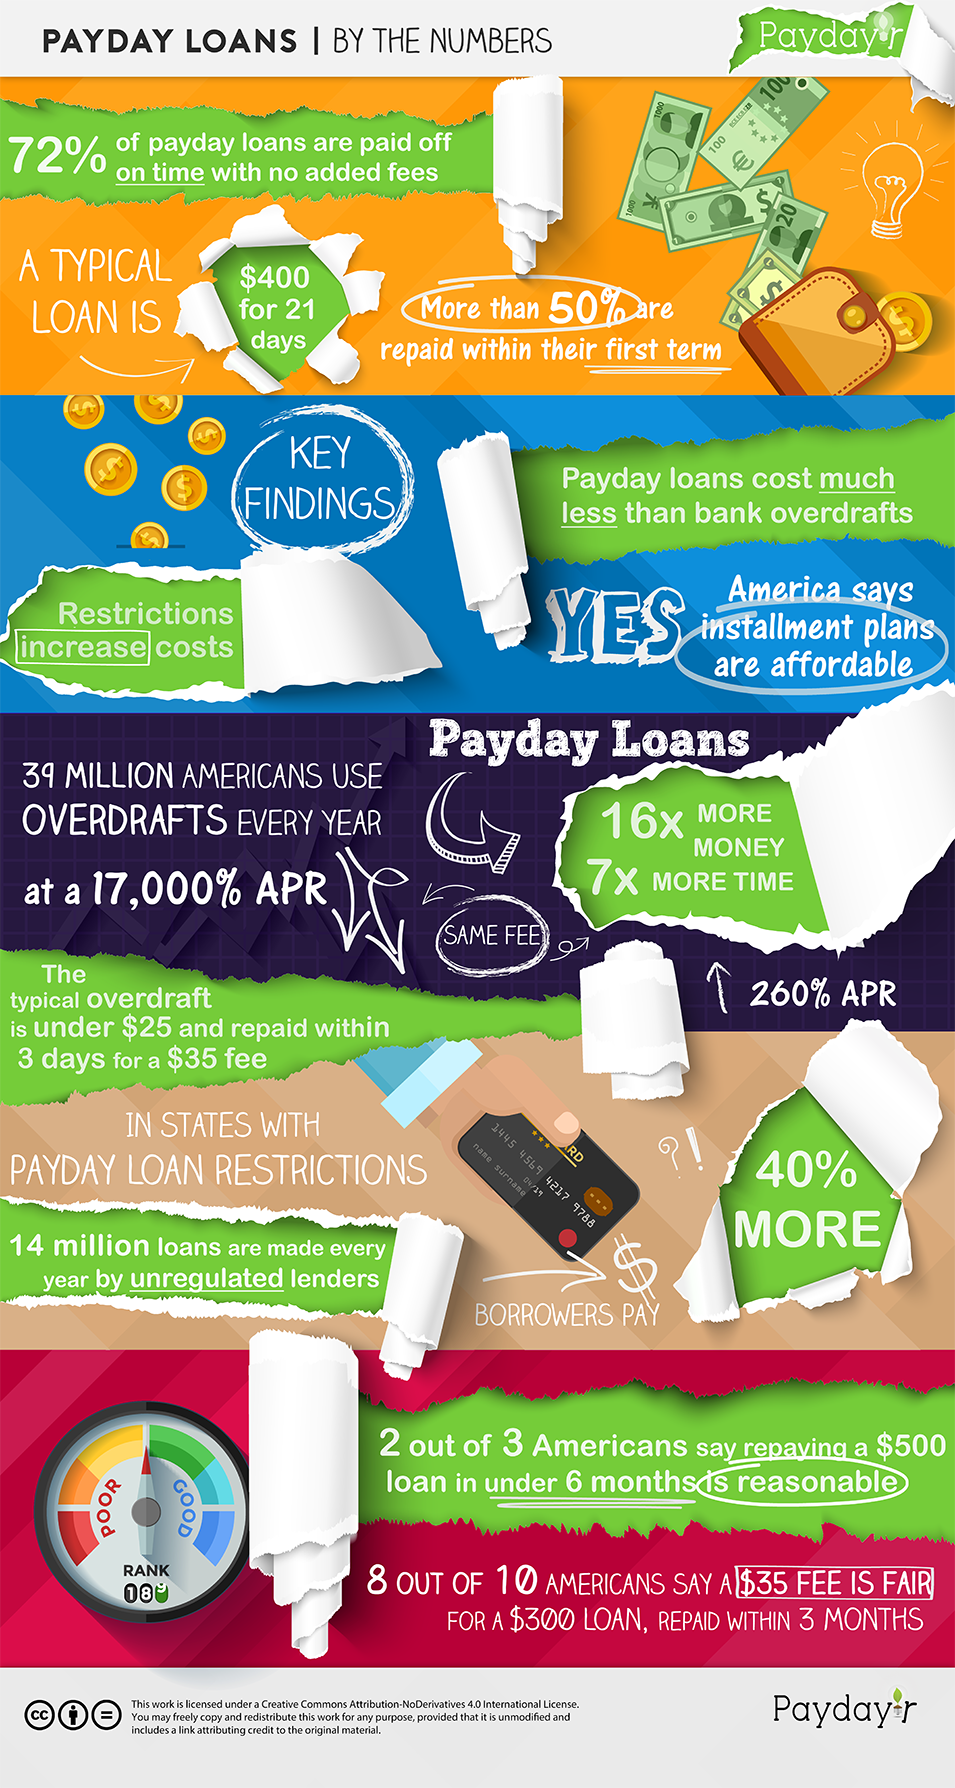 Payday Loans by the Numbers